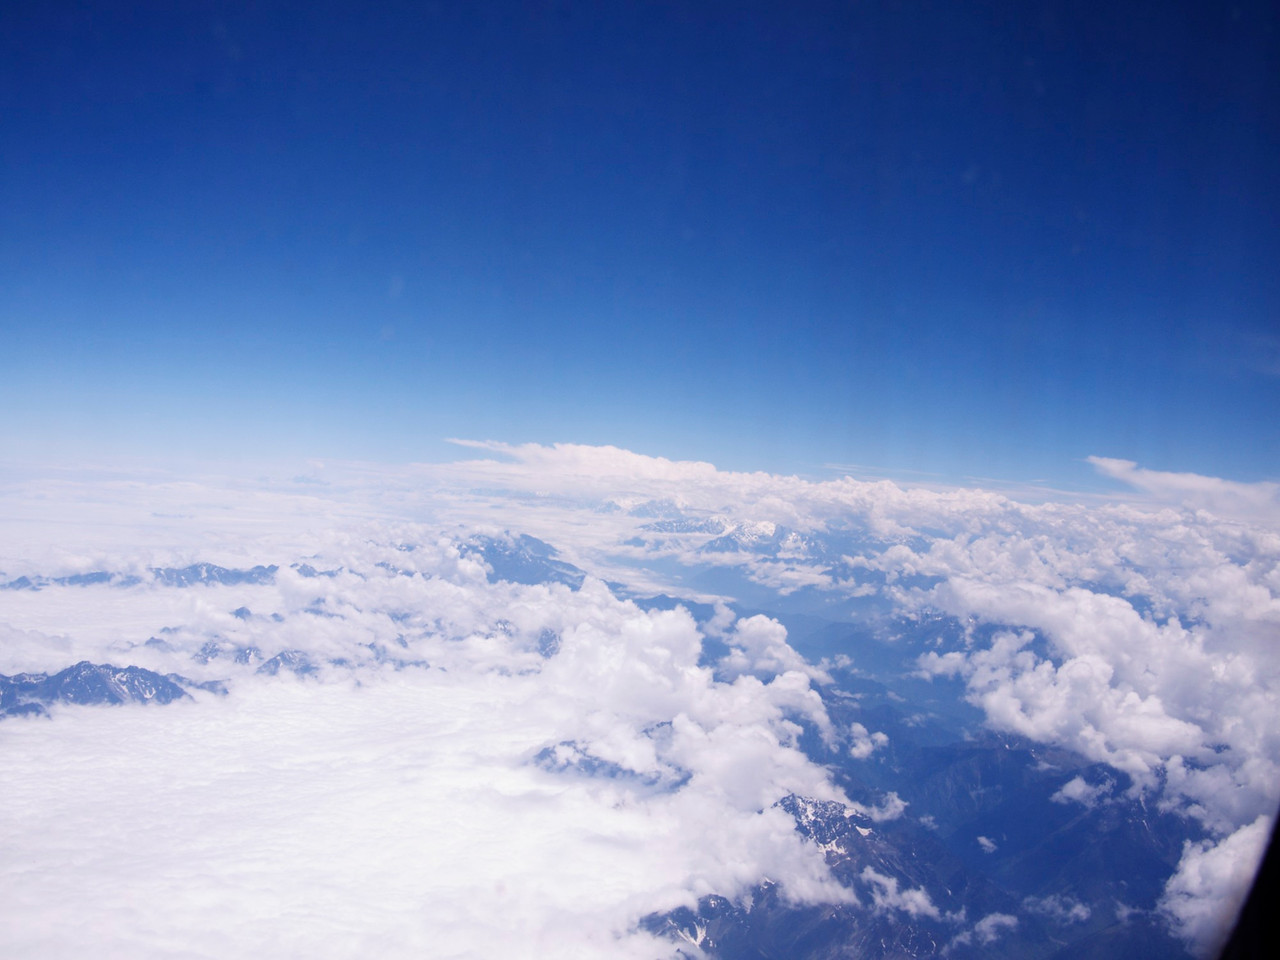 Flying over the foothills of the himalayas